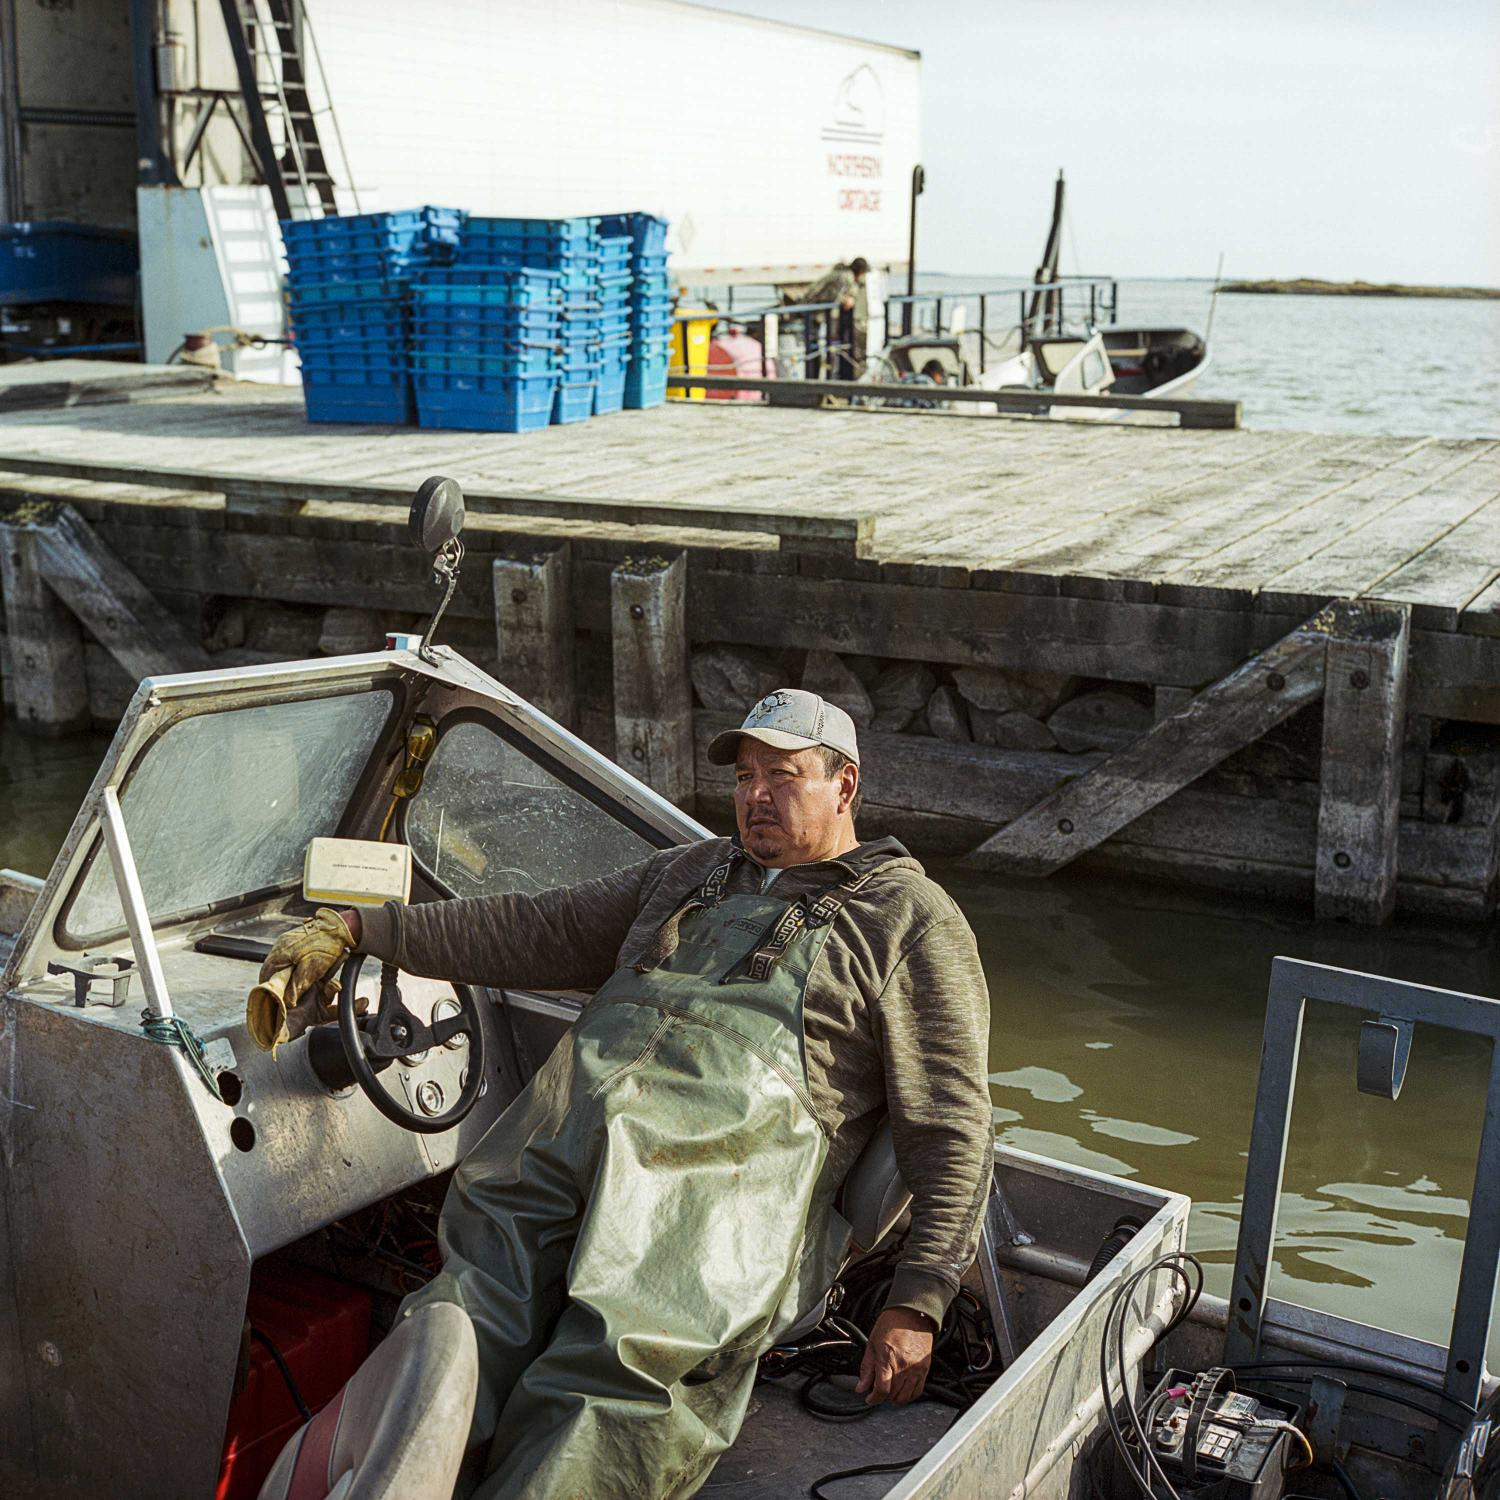 September 2016. Langford Saunders, President of the Norway House Fisherman's Co-op, rests in his boat after a day of commercial fishing on Lake Winnipeg in Northern Manitoba. Many fisherman complain of changes to their waterways due to hydro regulation; from a green slime and debris that gets caught in there nets, to an increase in lower grades of fish, such as mullet, instead of the higher priced pickerel and white fish.